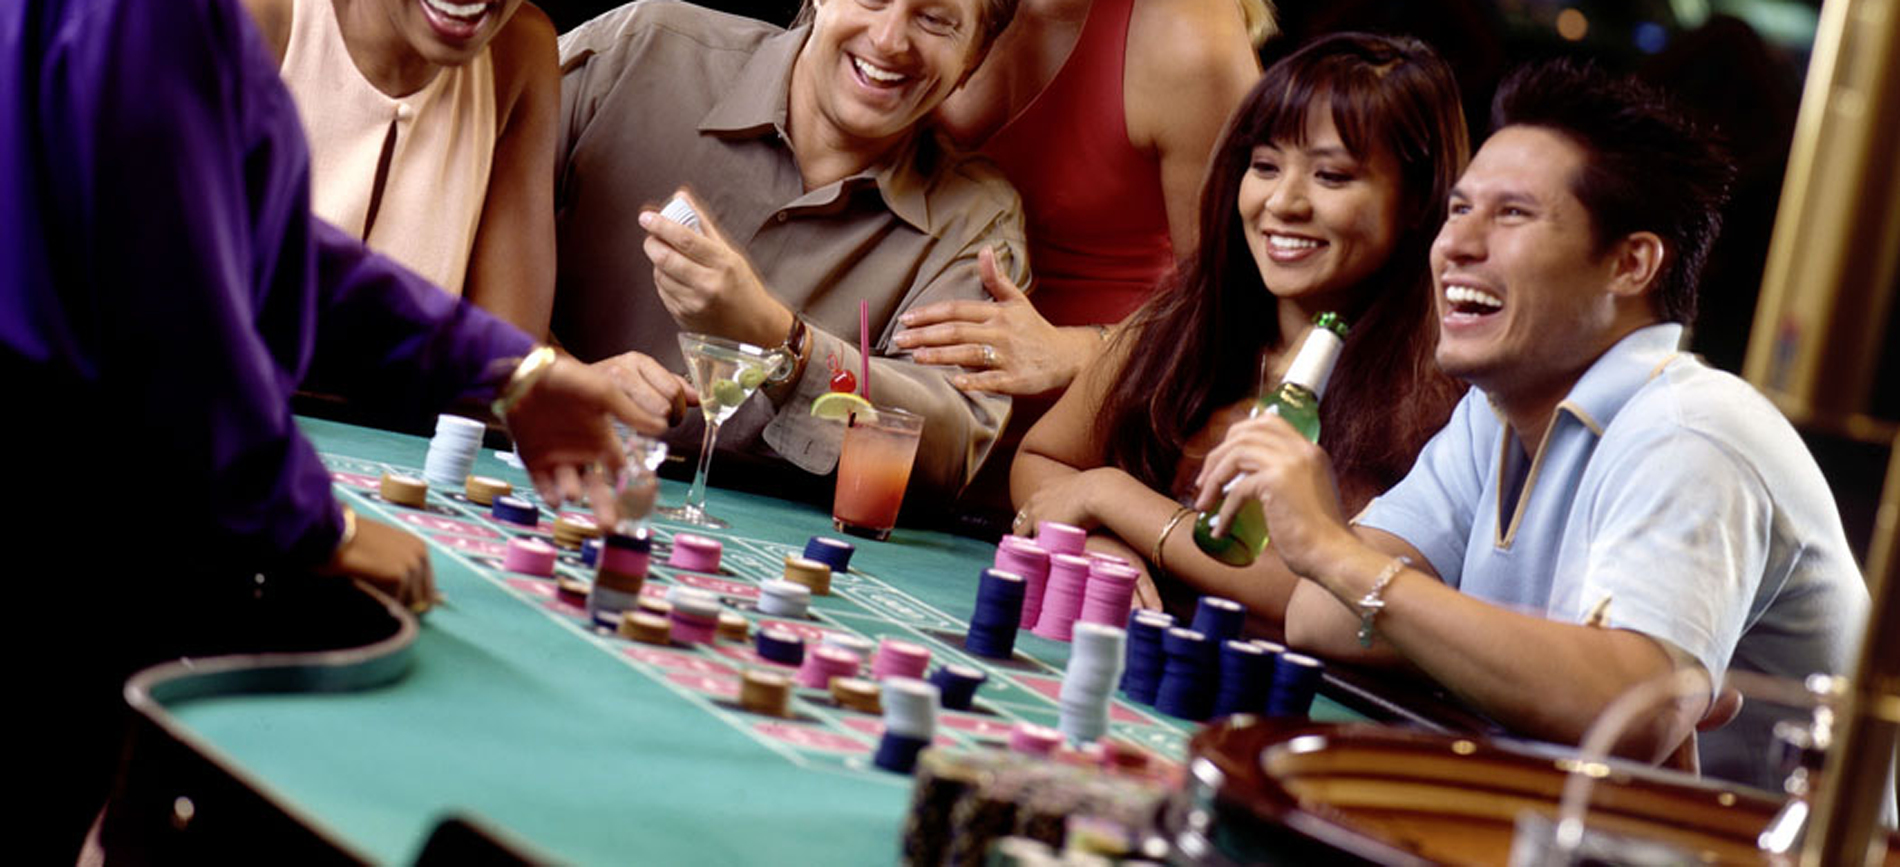 Can you drink for free while gambling in vegas vegas casino trio